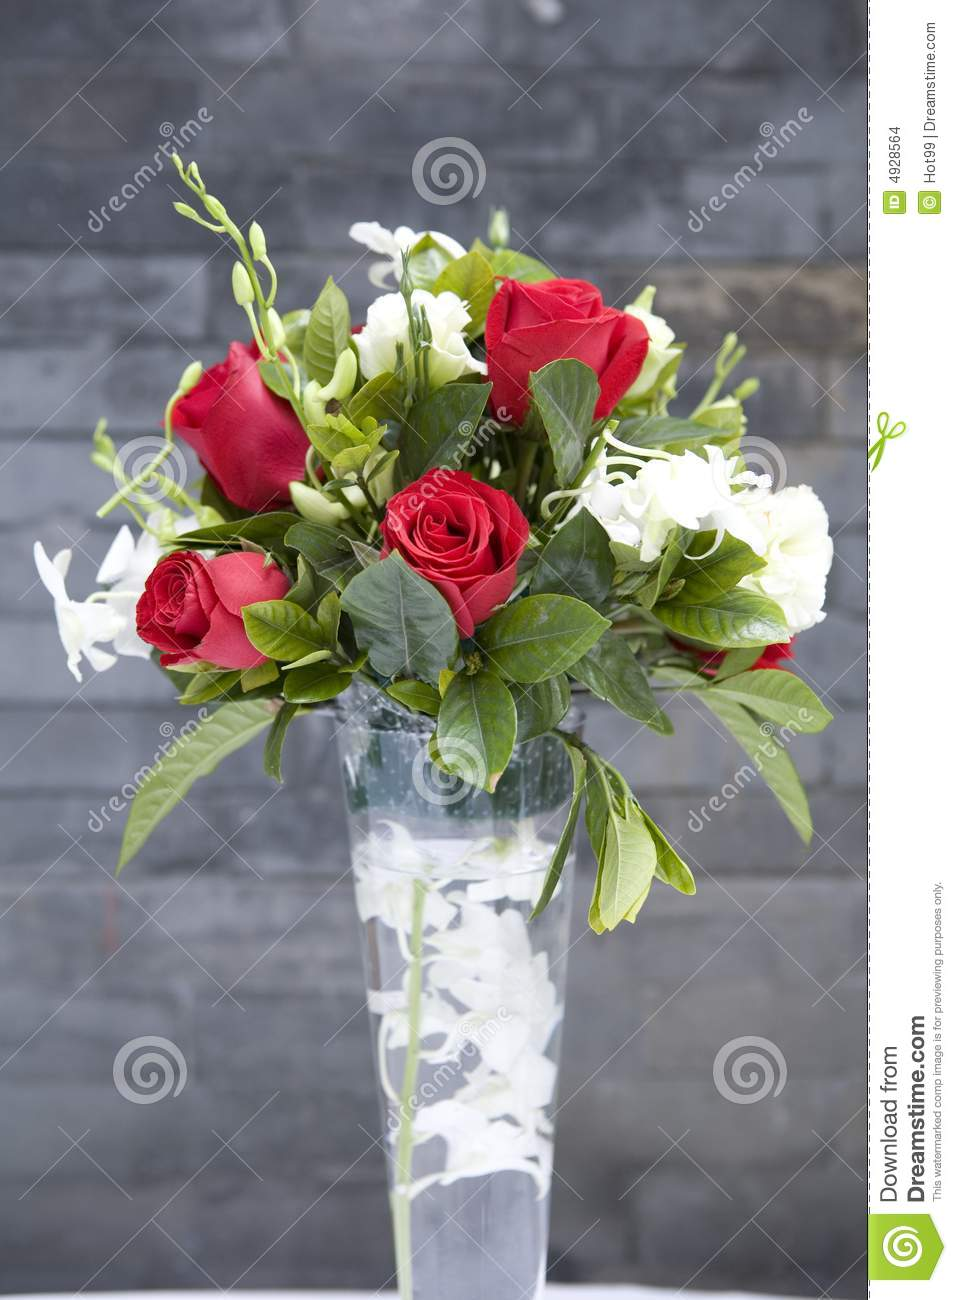 Rose flowers in glass vase1 stock photo image of bunch royalty free stock photo reviewsmspy